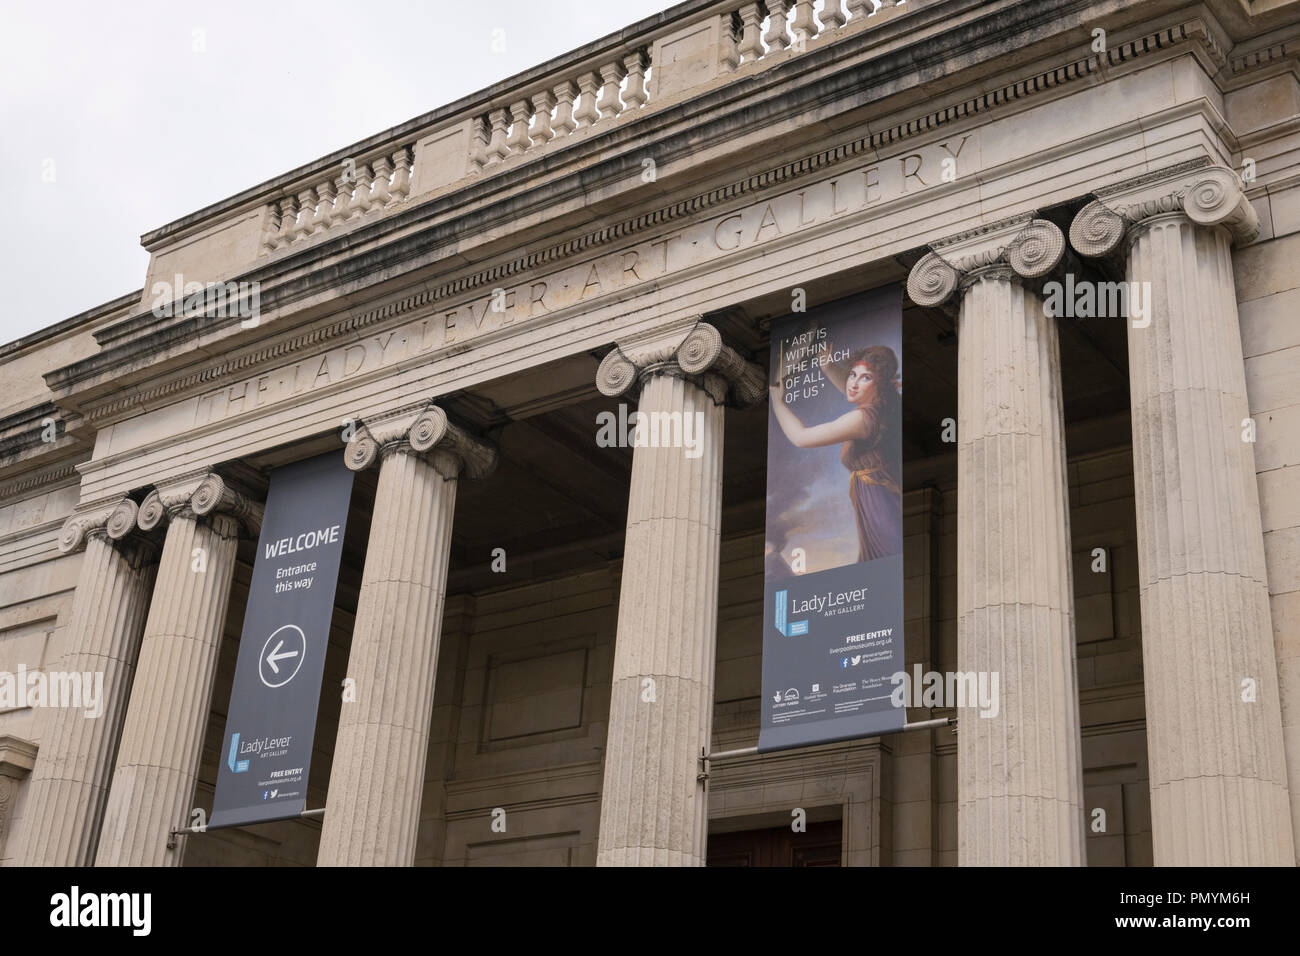 Liverpool Wirral Port Sunlight Village The Lady Lever Art Gallery banners signs exhibition neo-classical columns pillars balustrade detail - Stock Image